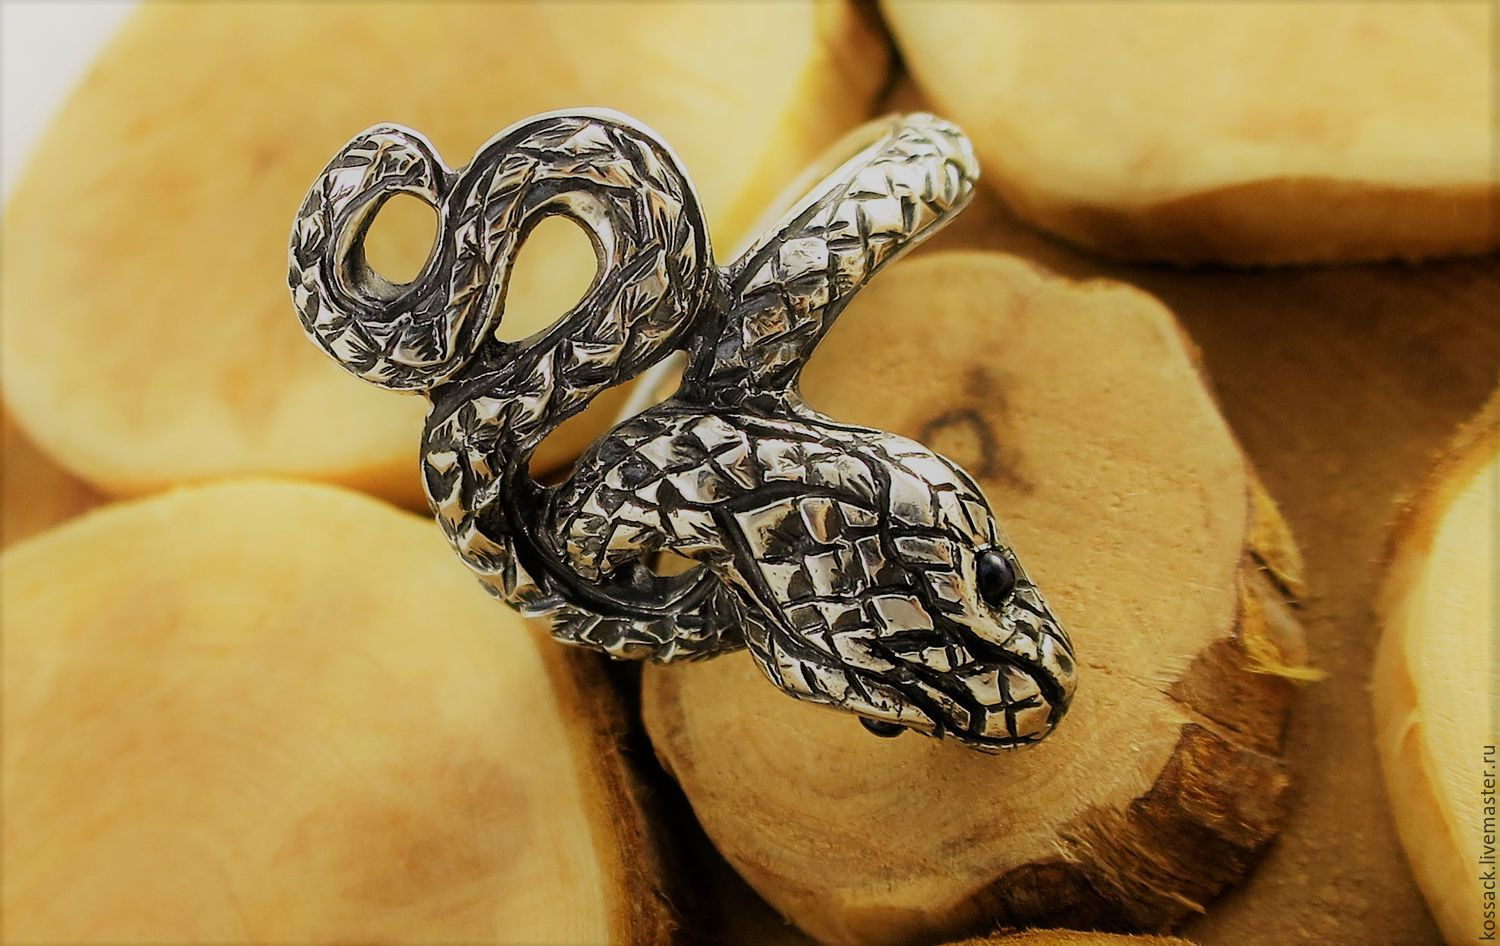 Snake ring unisex unique handcrafted ring, Rings, Zaporozhye,  Фото №1